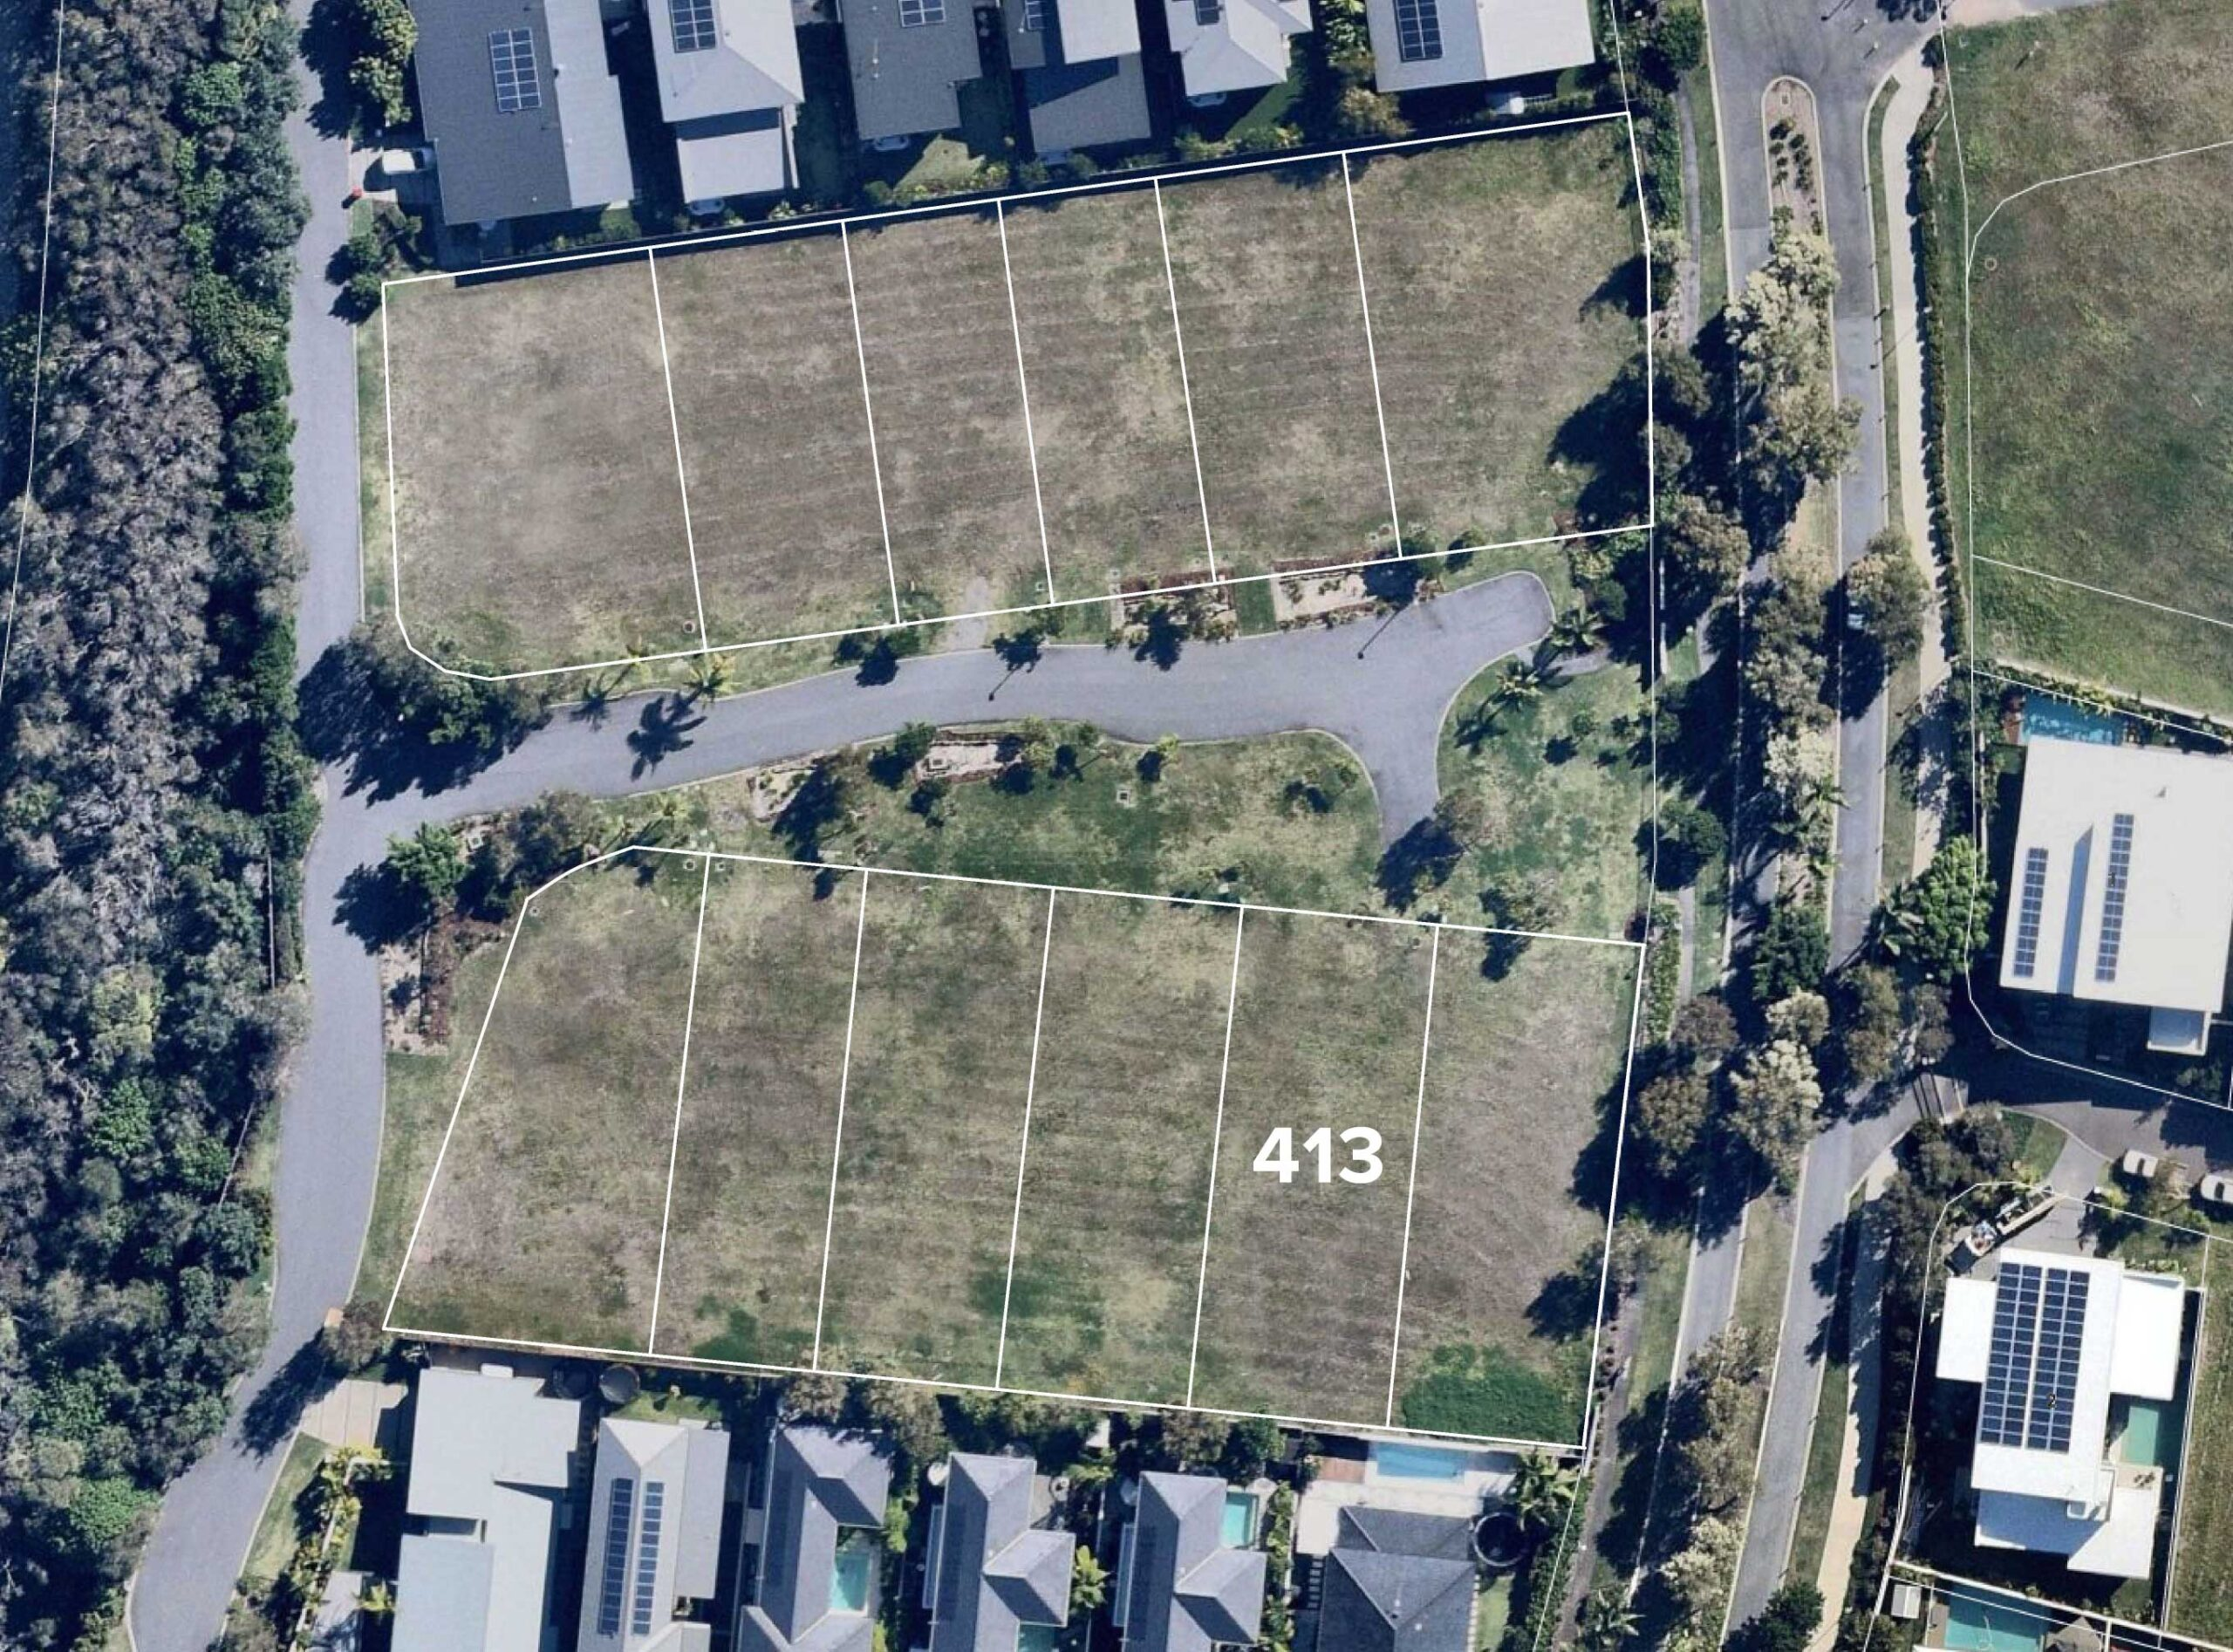 Aerial view of Lot 413